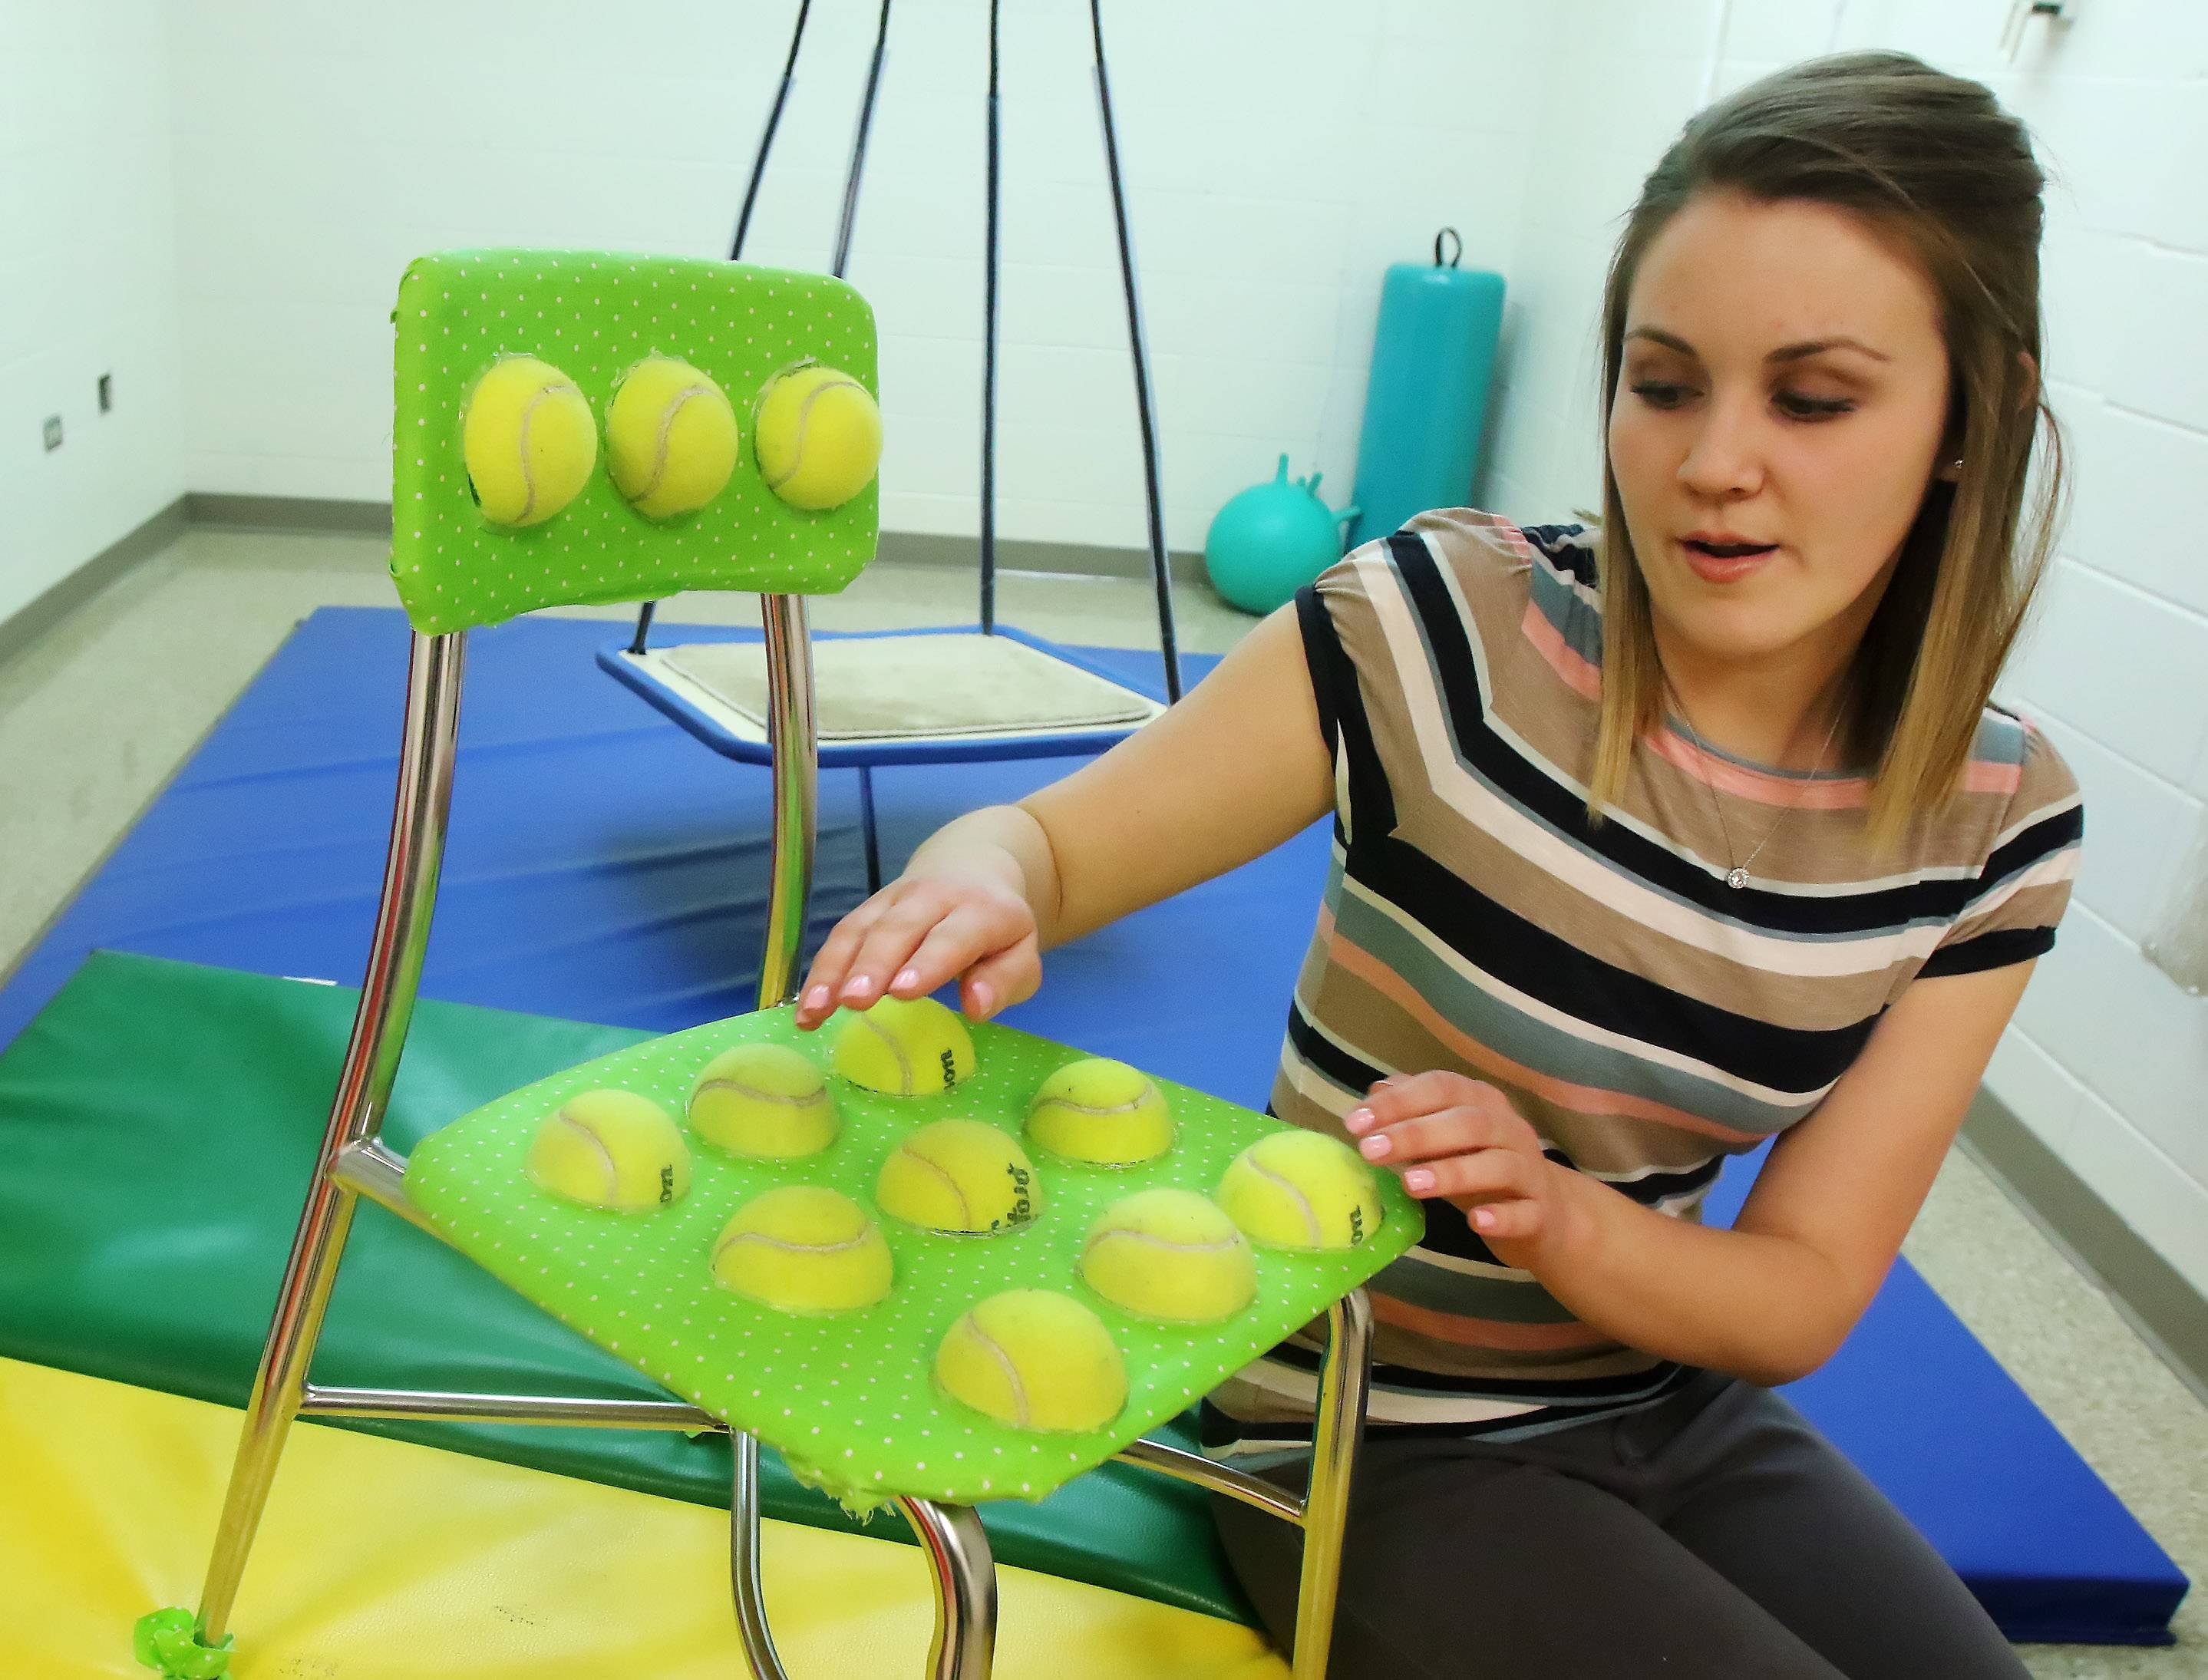 Teacher's DIY tennis ball chairs for kids with special needs go viral on social media